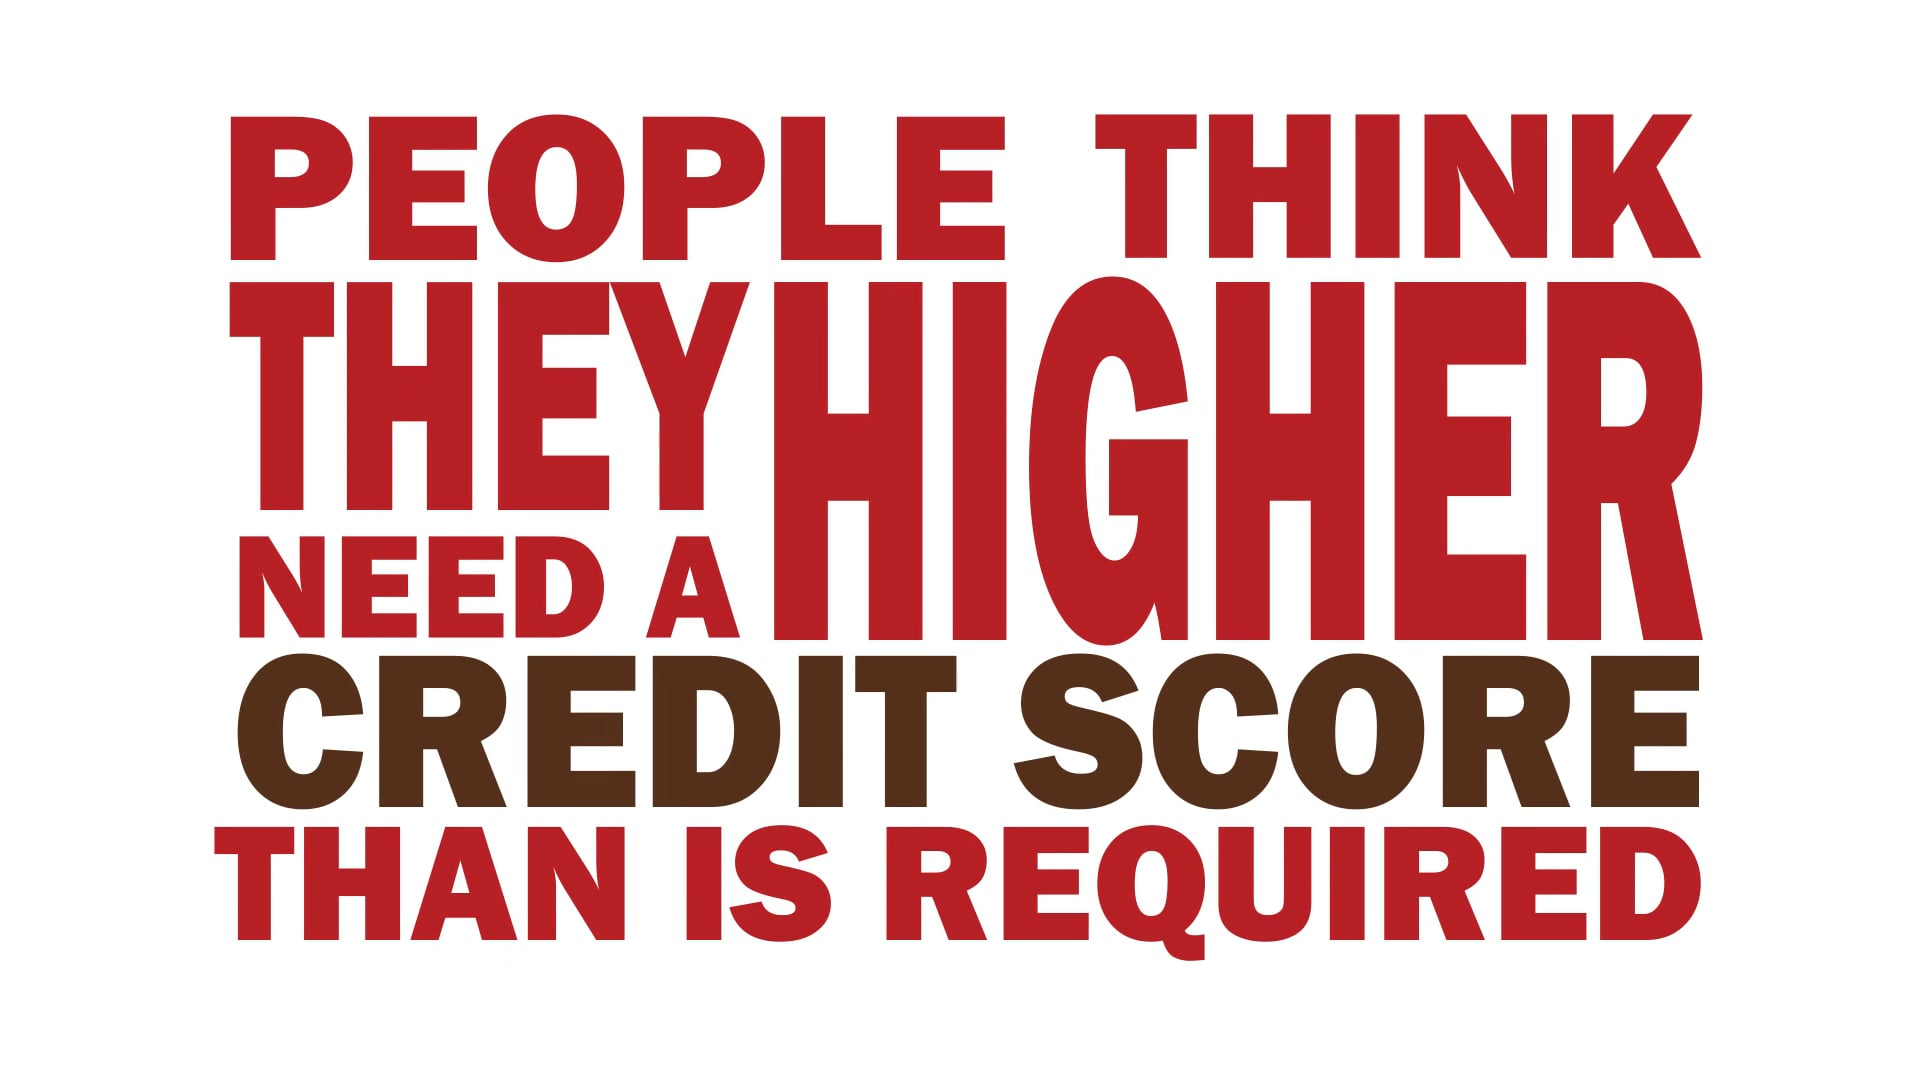 A+ Worried About Your Credit Score?